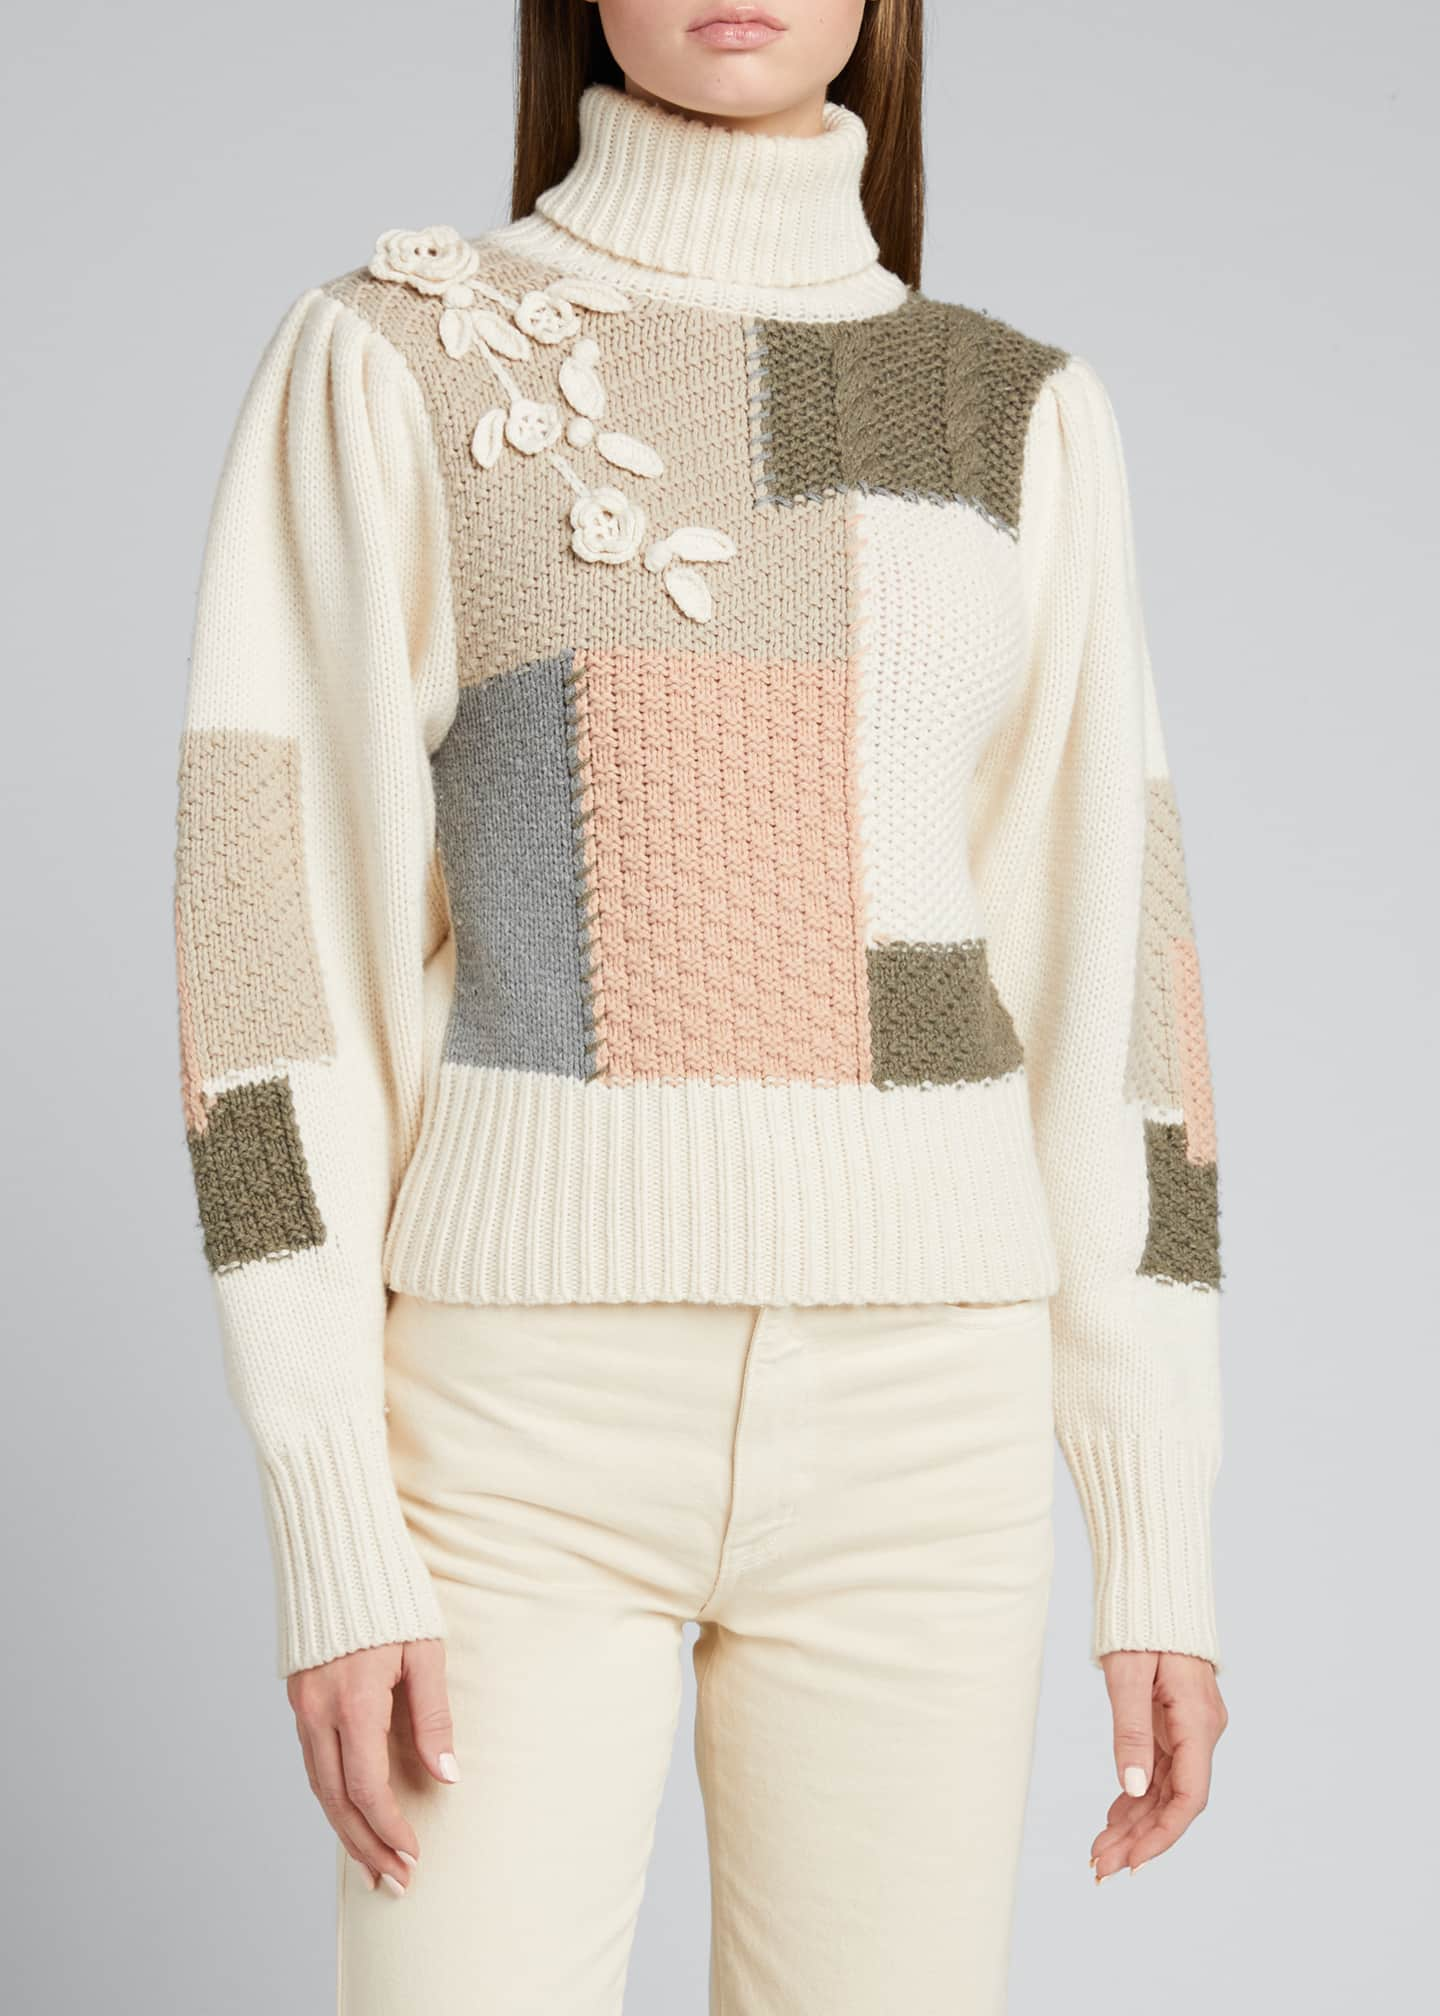 Image 3 of 5: Allan Patchwork Floral Applique Knit Sweater